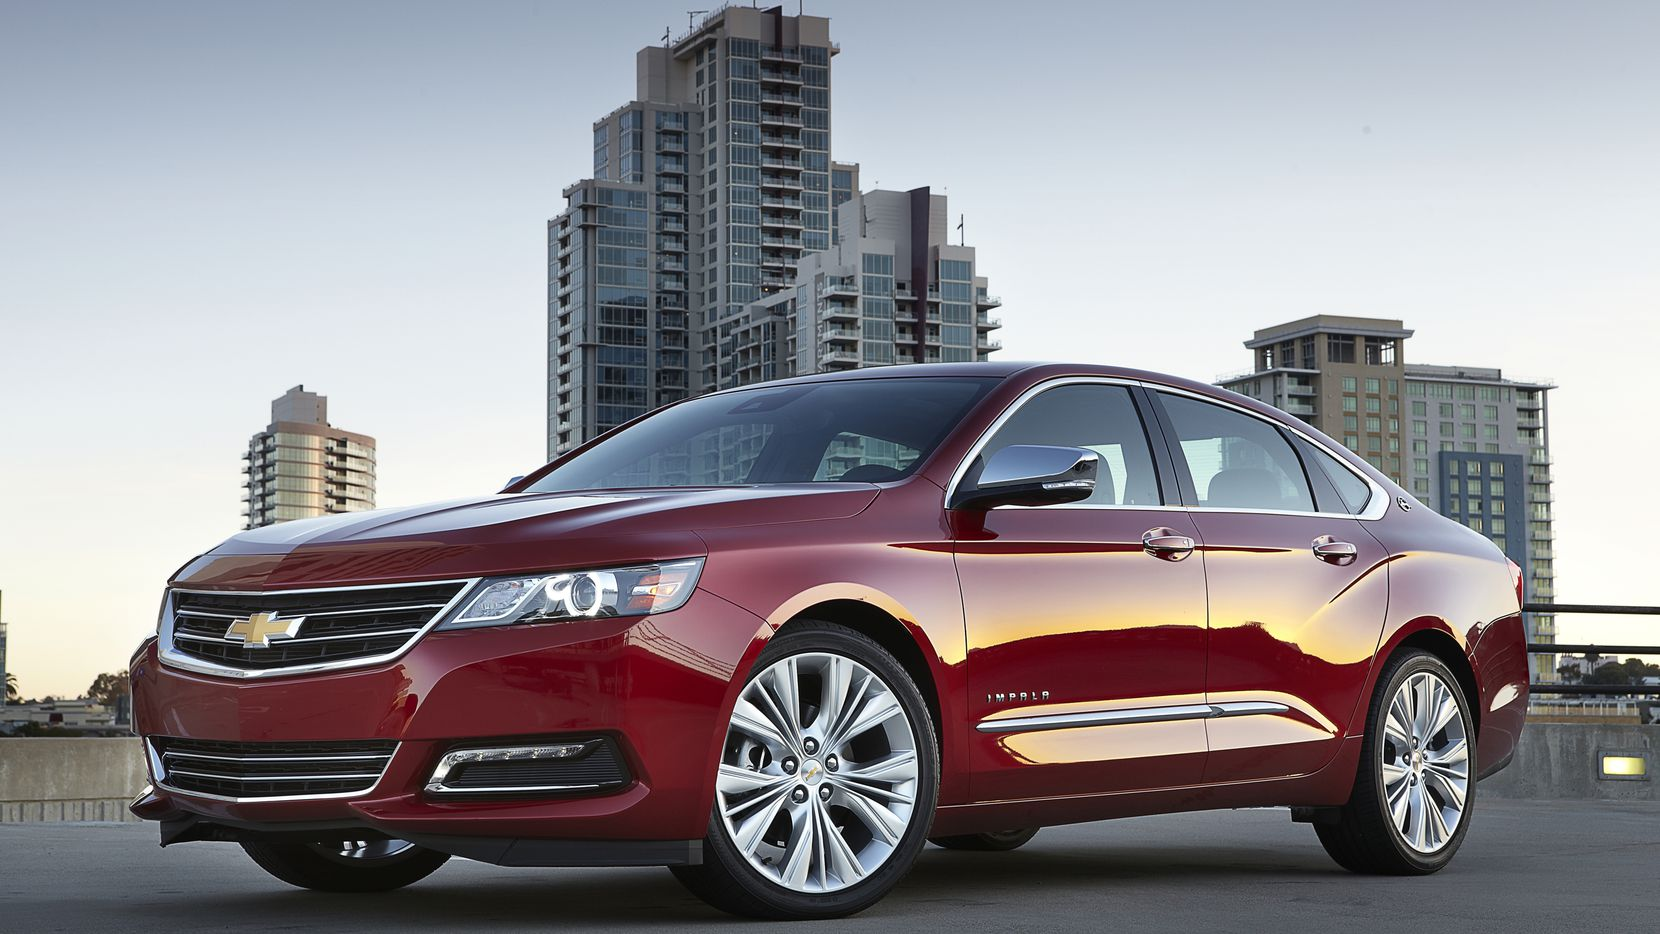 Consumer Reports Ranks New Chevy Impala As Best Full Size Sedan Above Lexus Ls460 And Audi A6